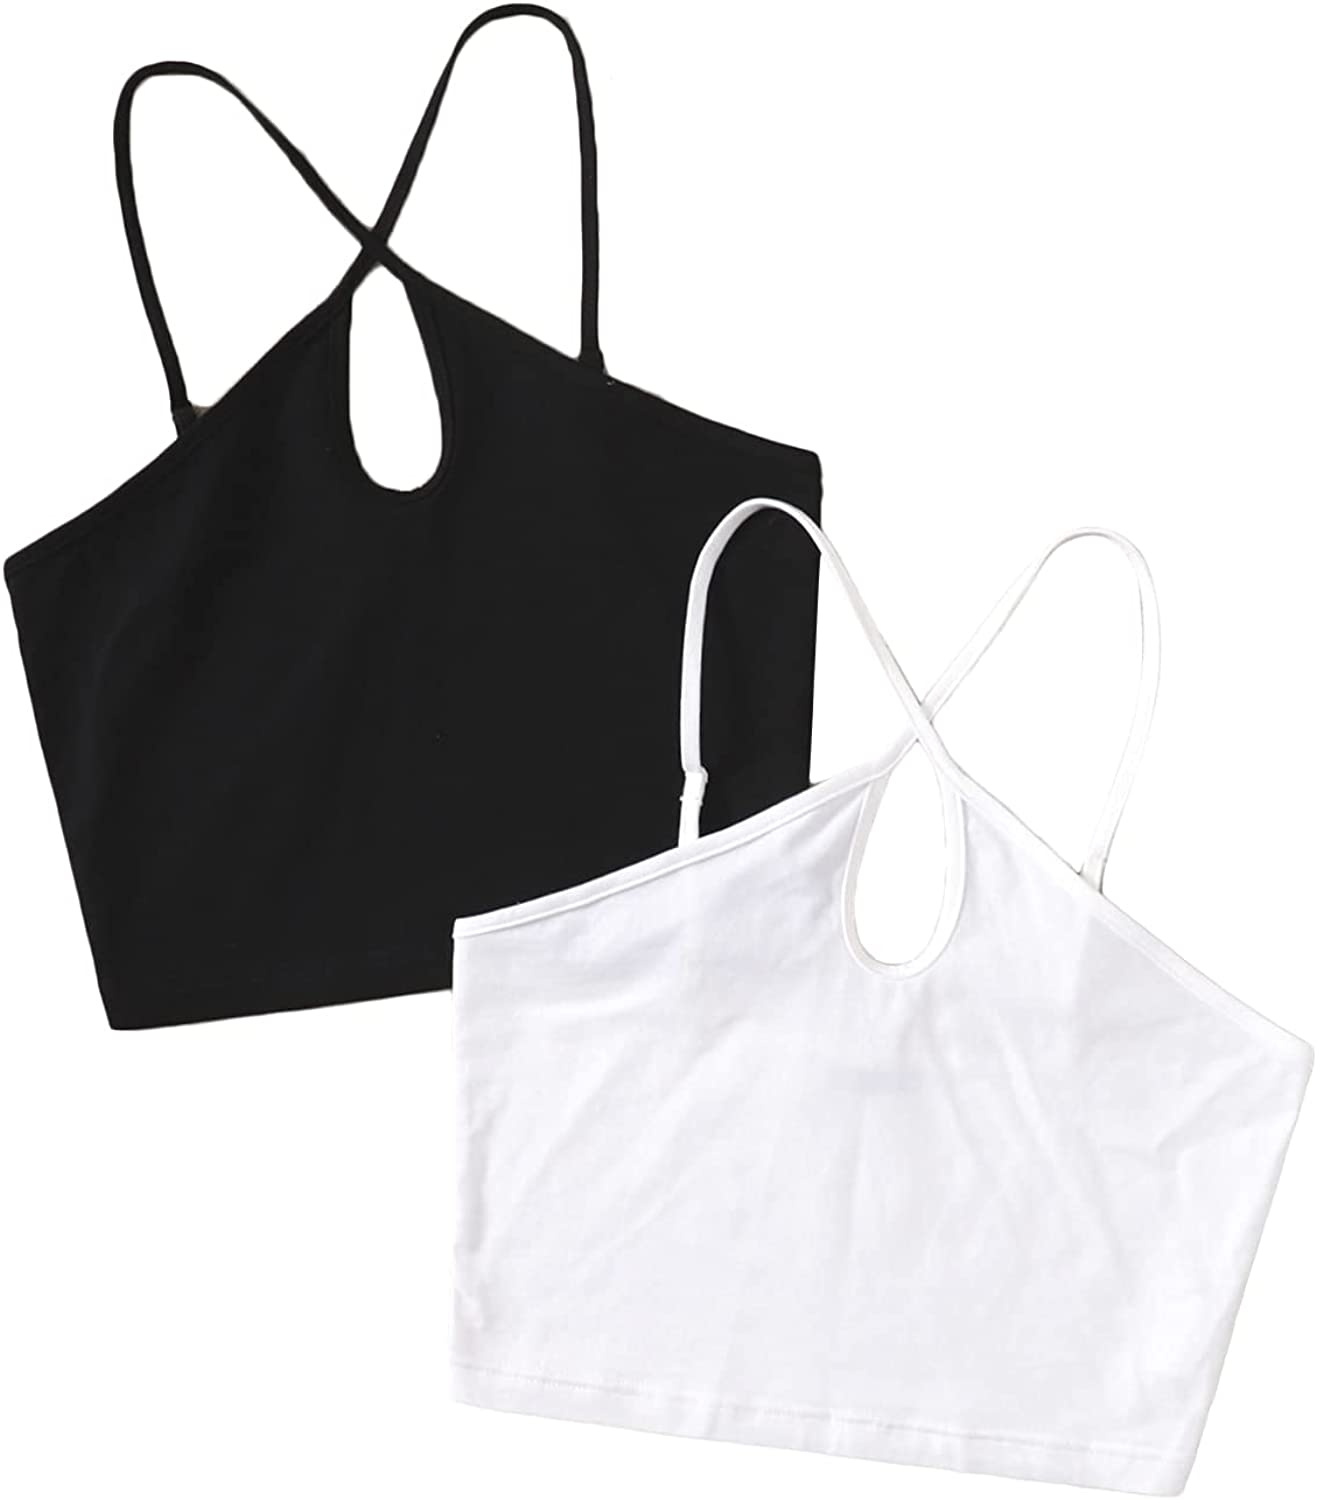 Milumia Women's 2 Packs Cut Out Front Criss Cross Halter Top Cami Crop Top Two Pieces